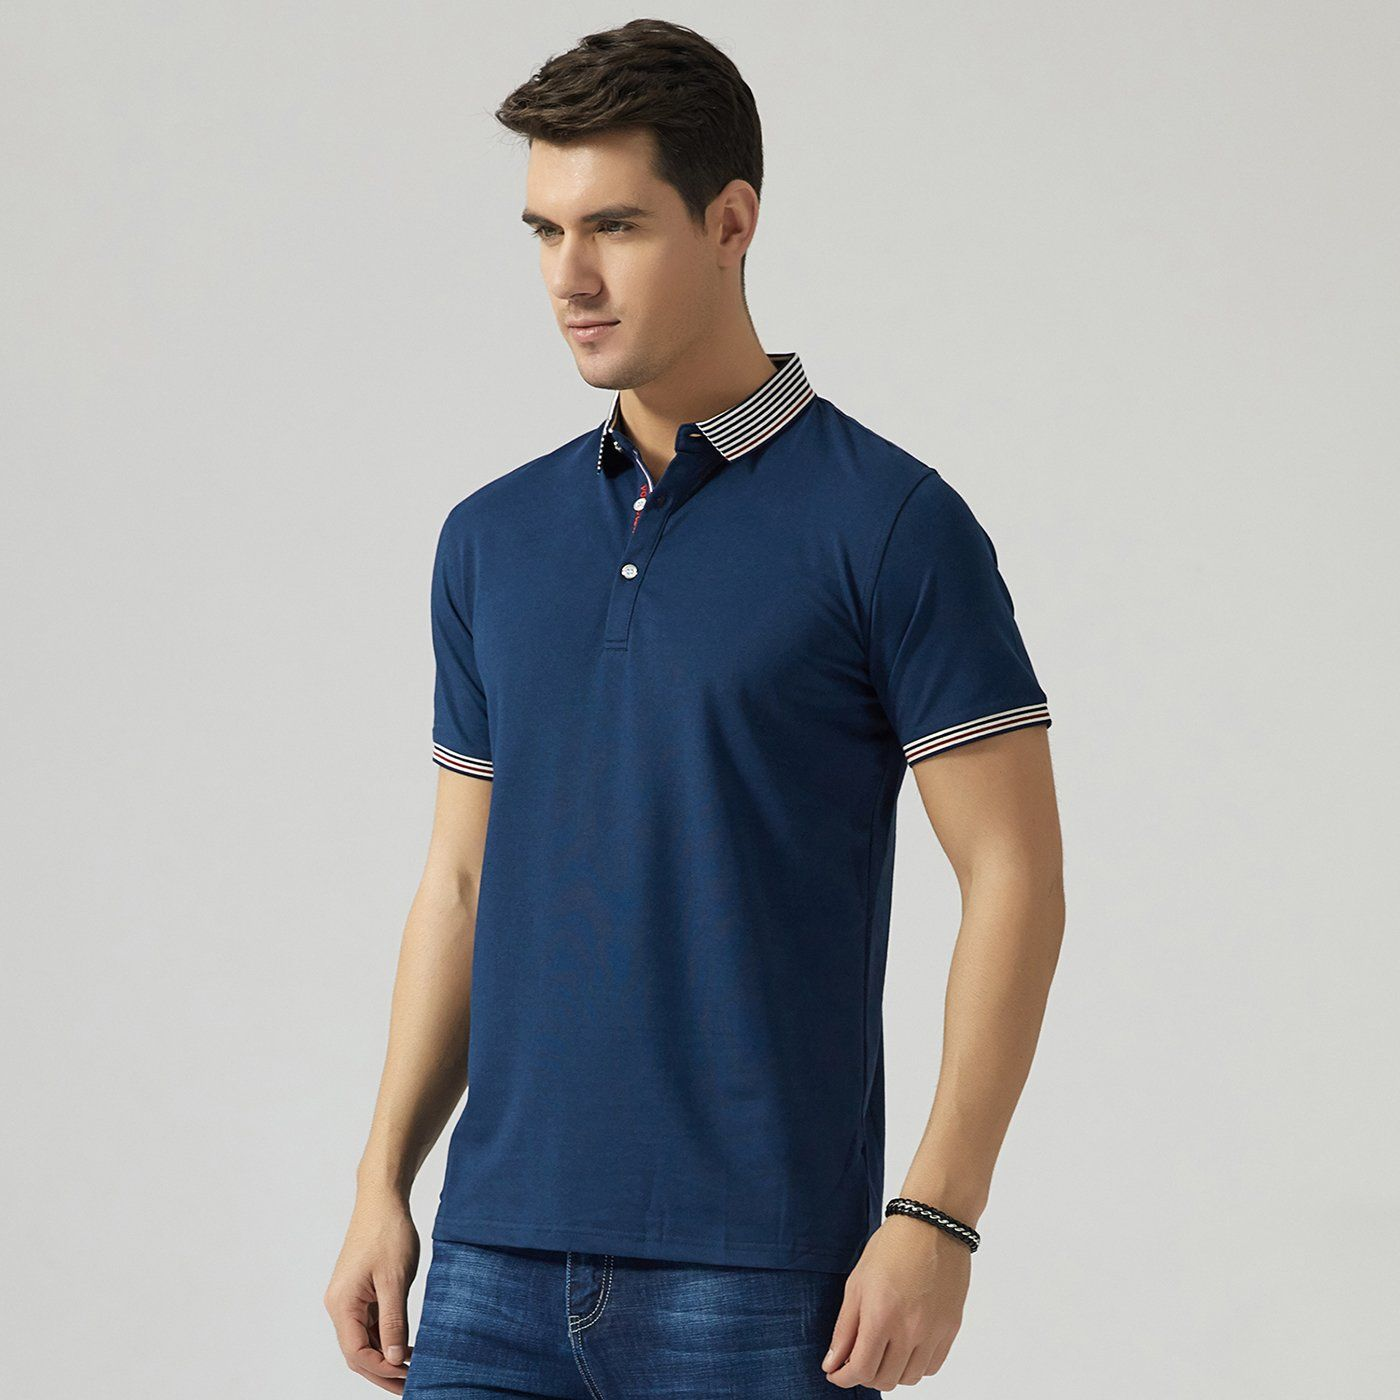 Polo Shirts For Men Mens Fashion Solid Color Business Polo T Shirt